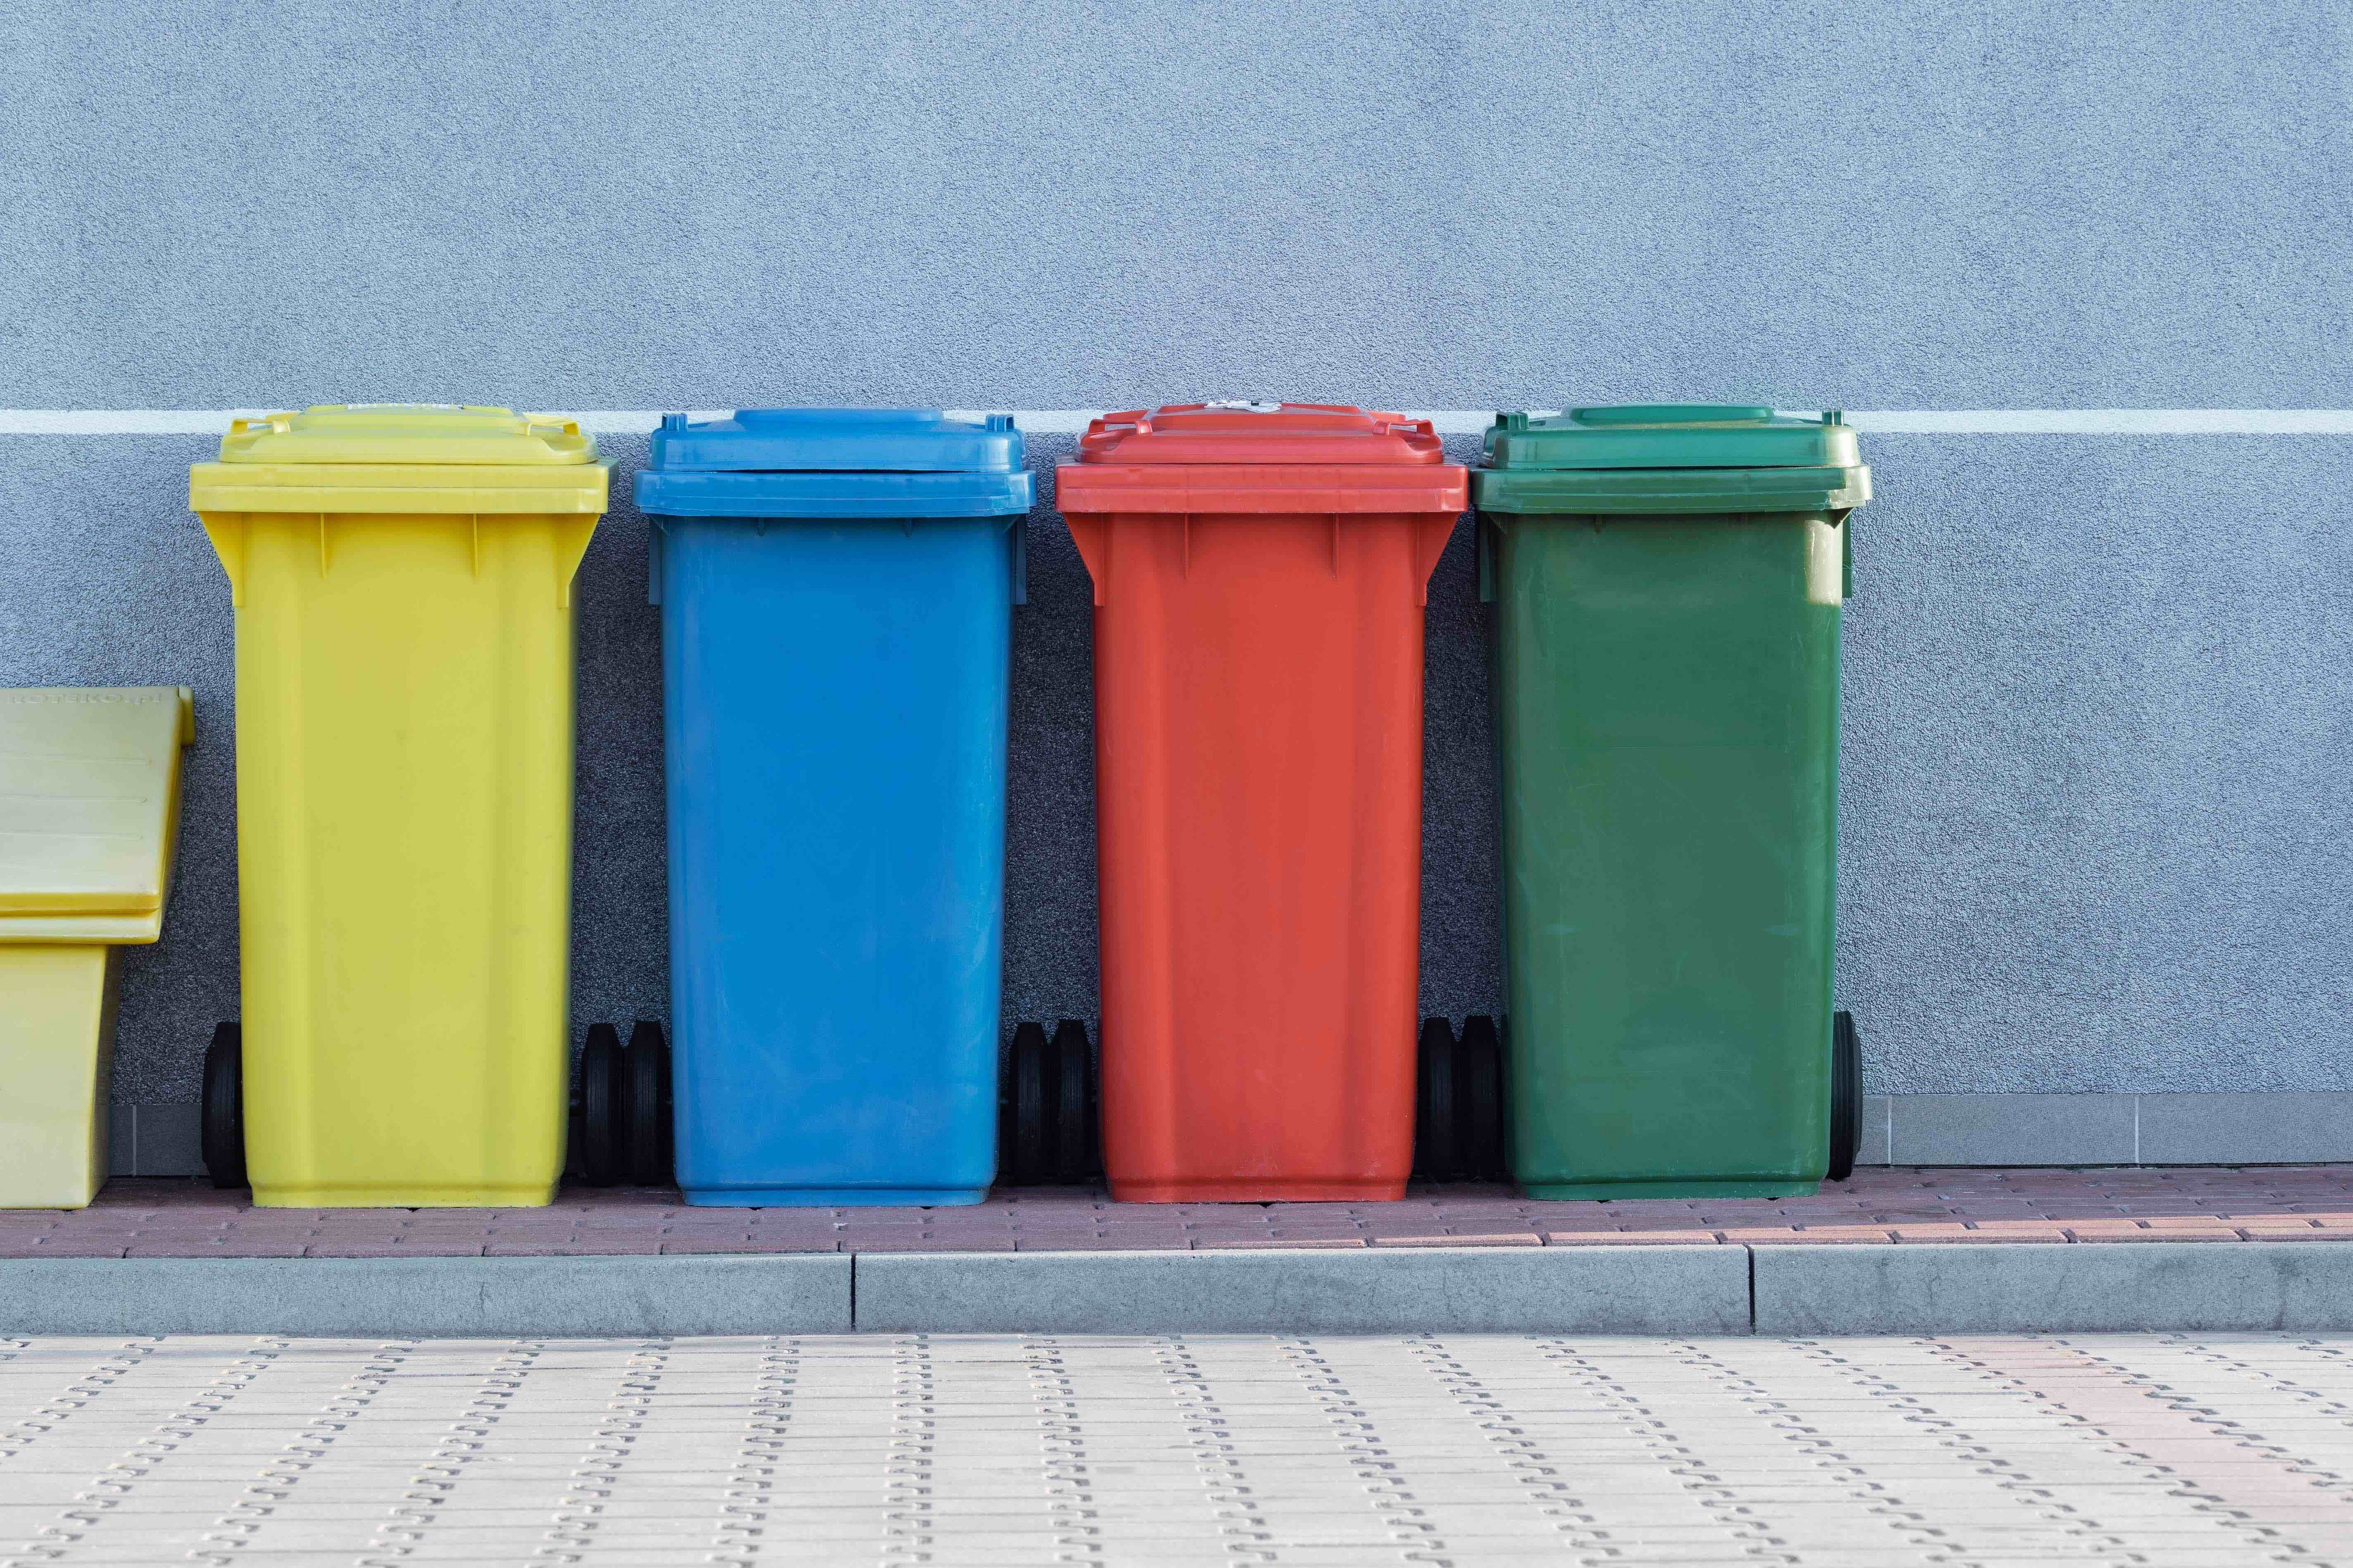 the u.s. must recycle recycling - age of awareness - medium